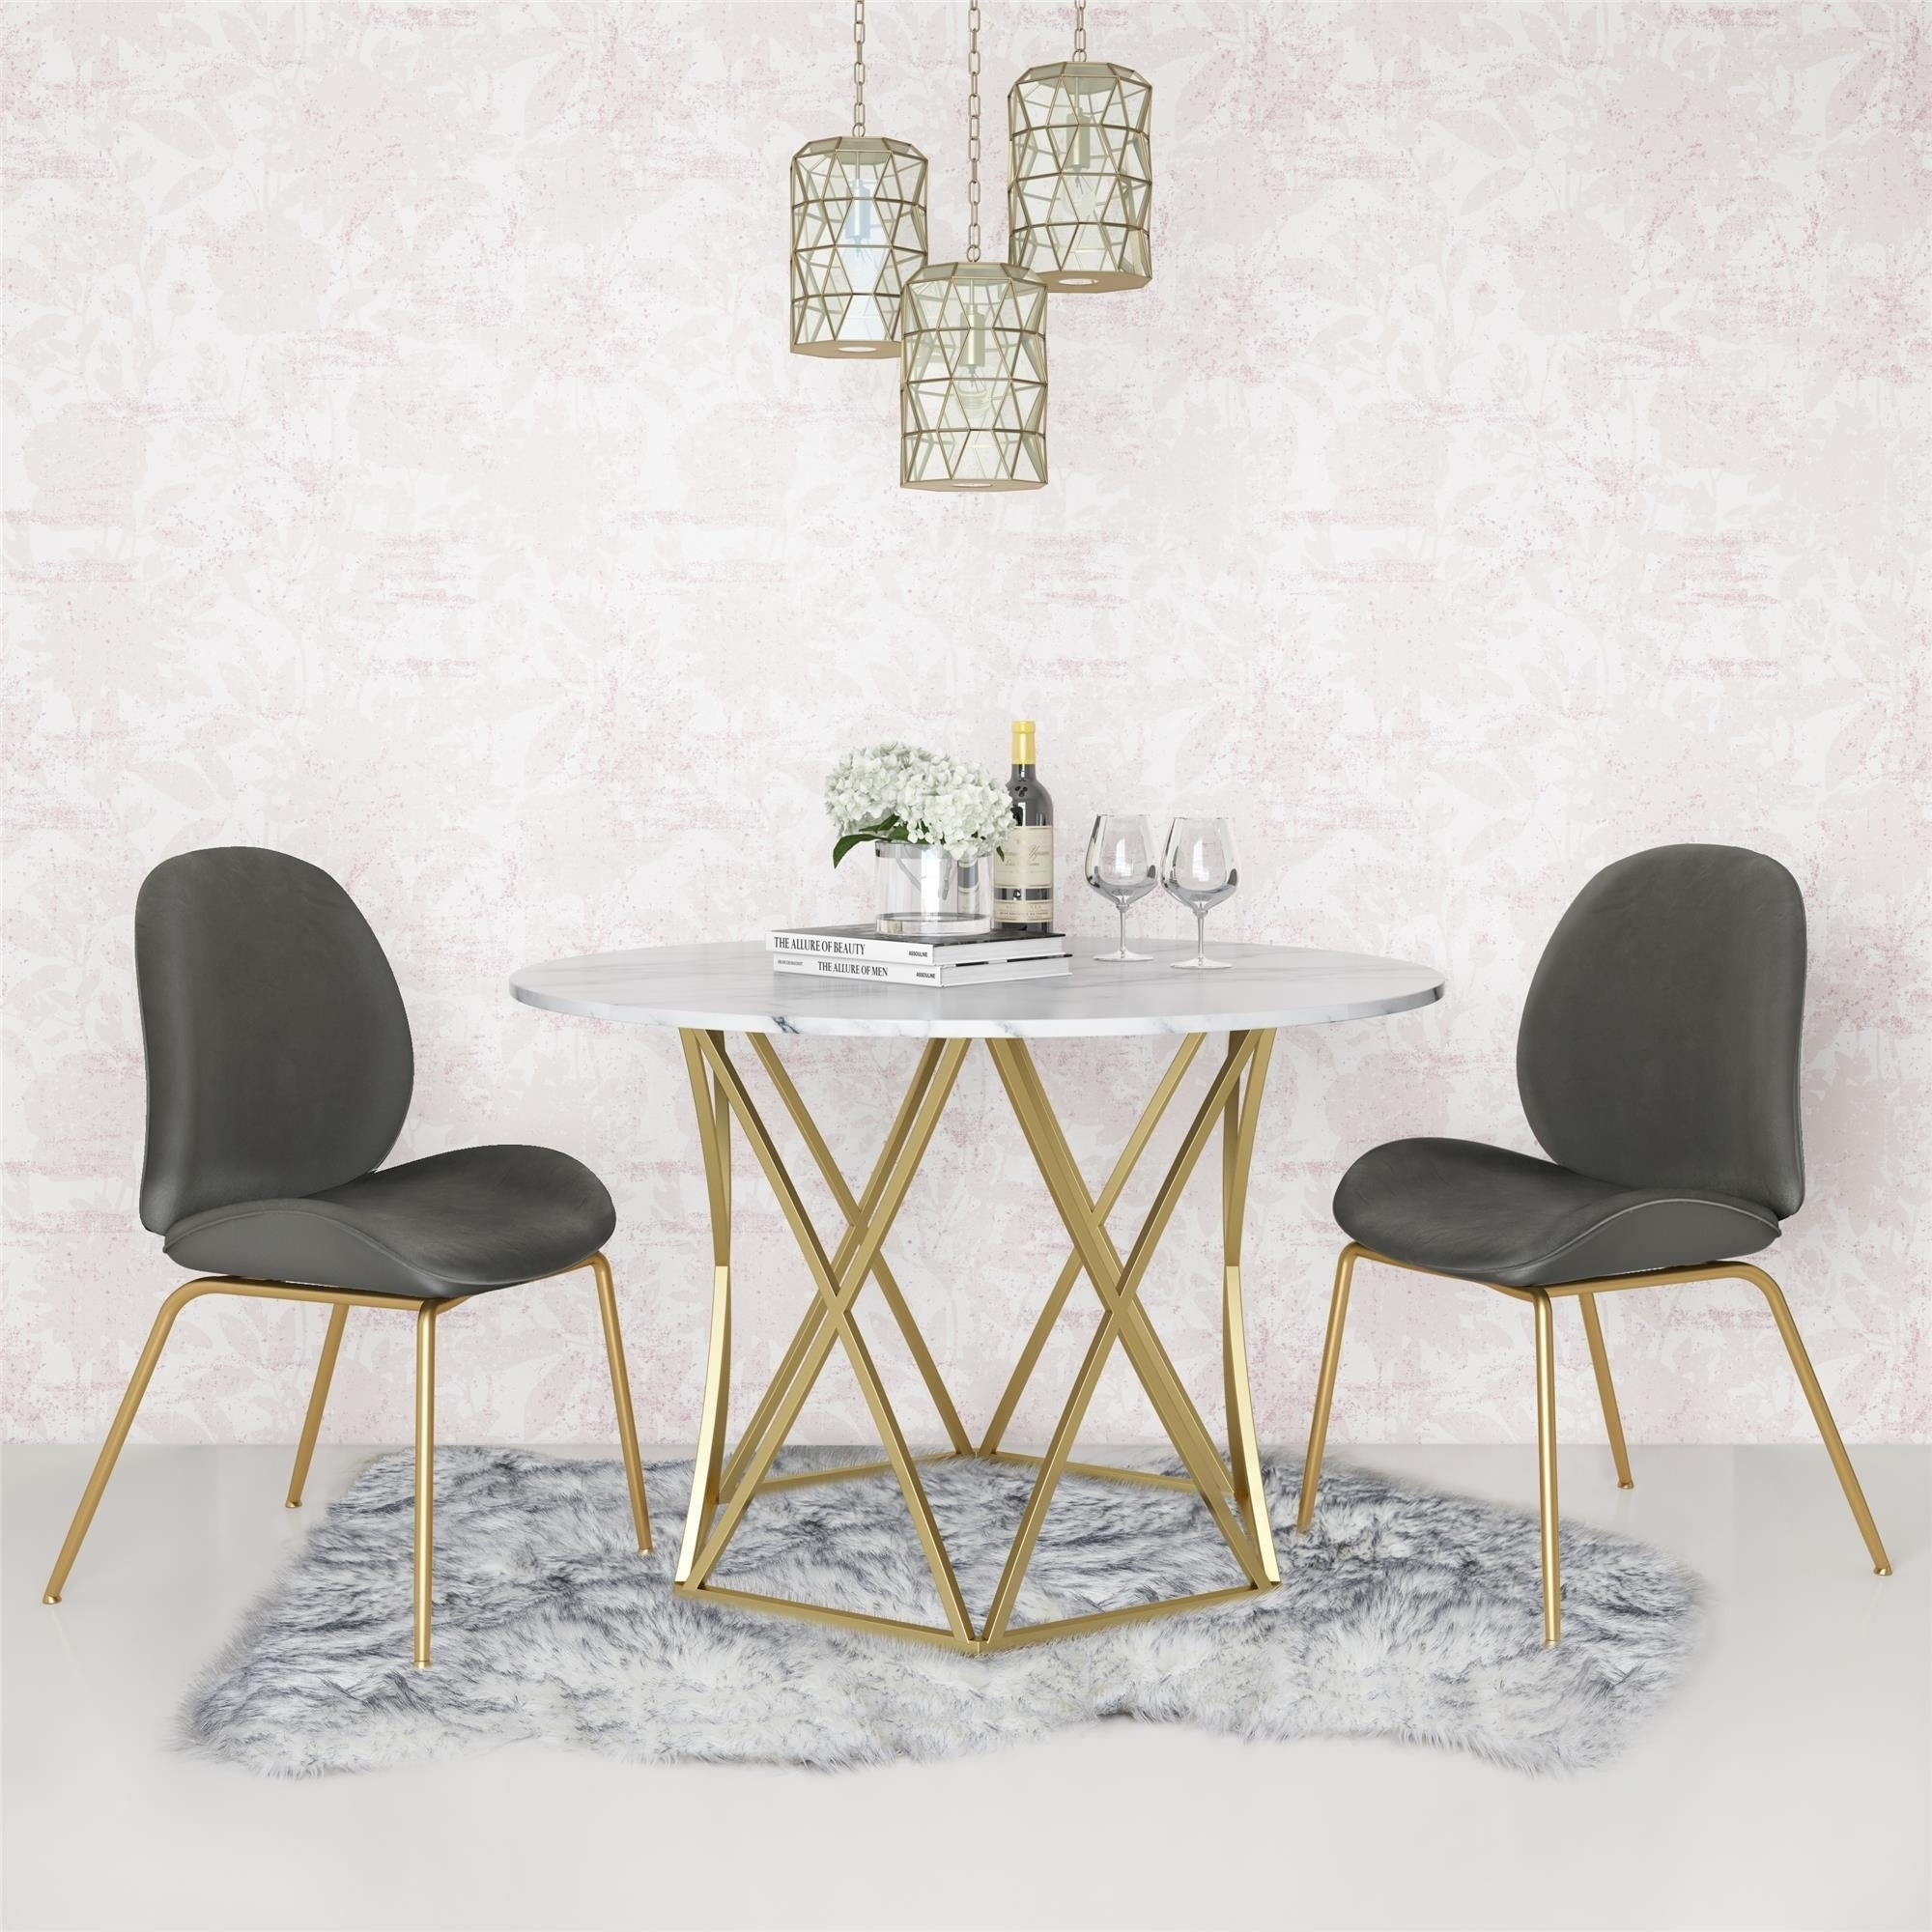 Glam dining room bar furniture find great furniture deals shopping at overstock